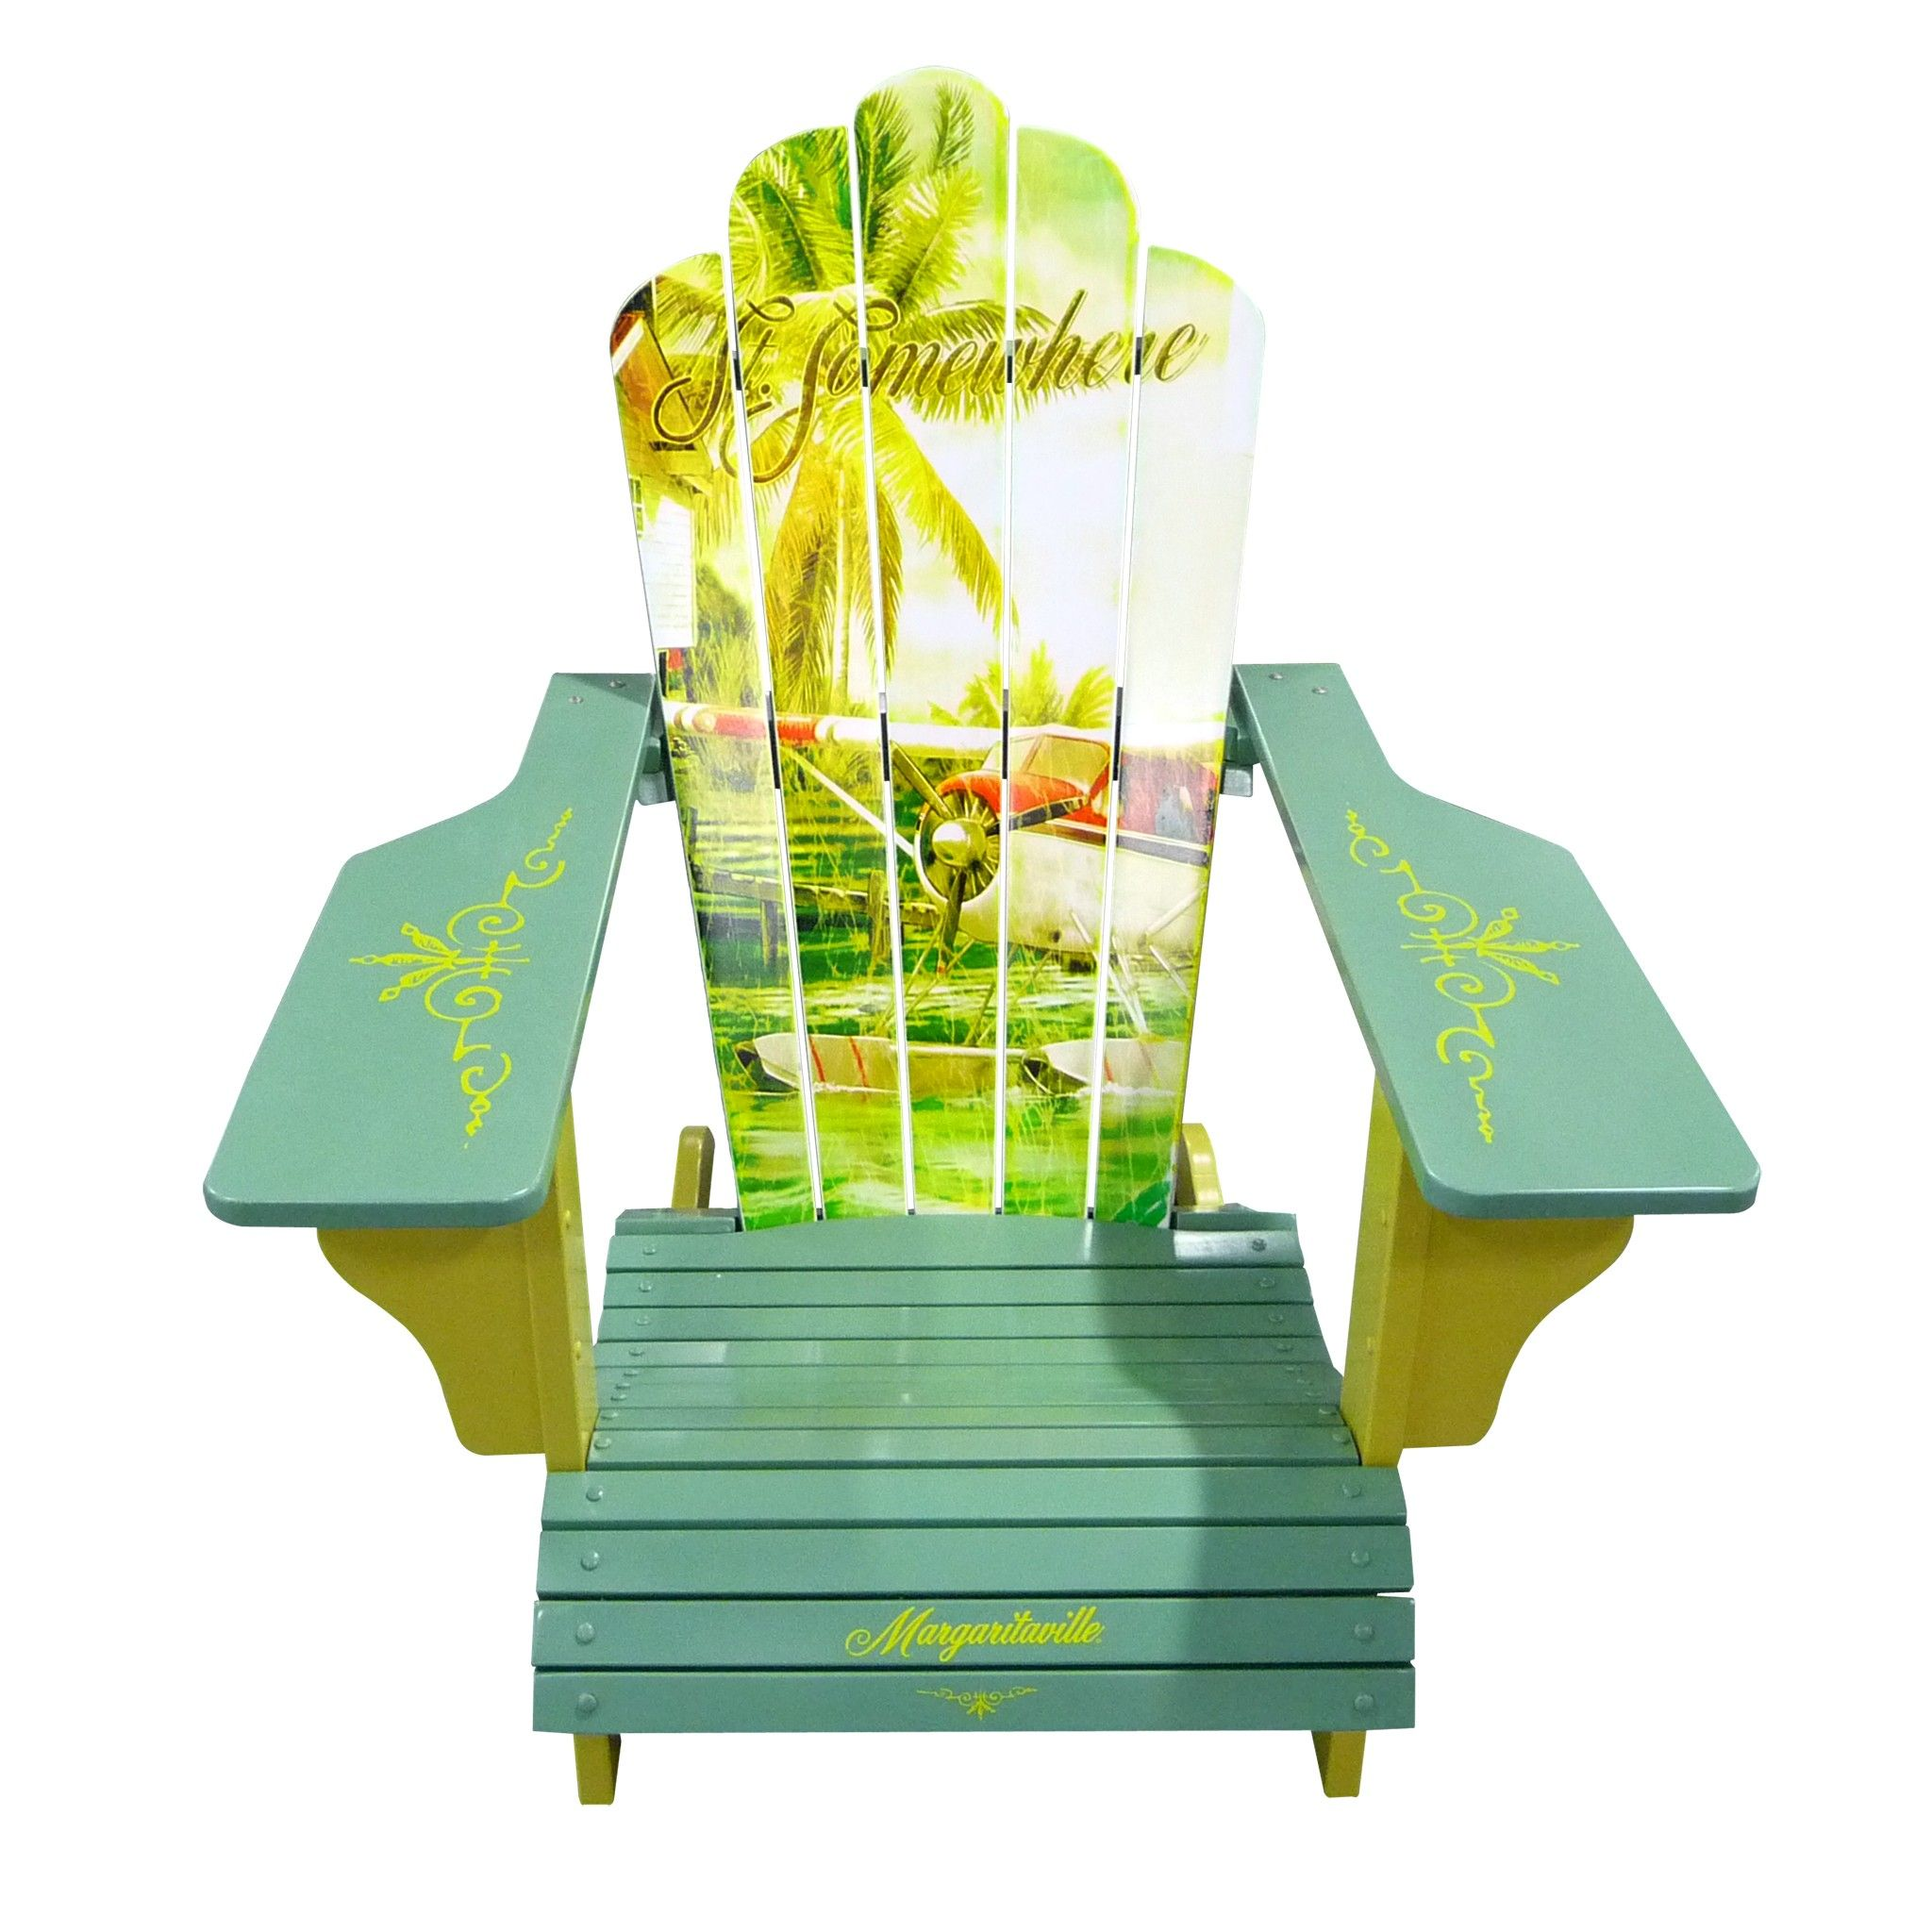 Margaritaville Adirondack Chairs Bring Paradise A Little Closer To Where You Are With The